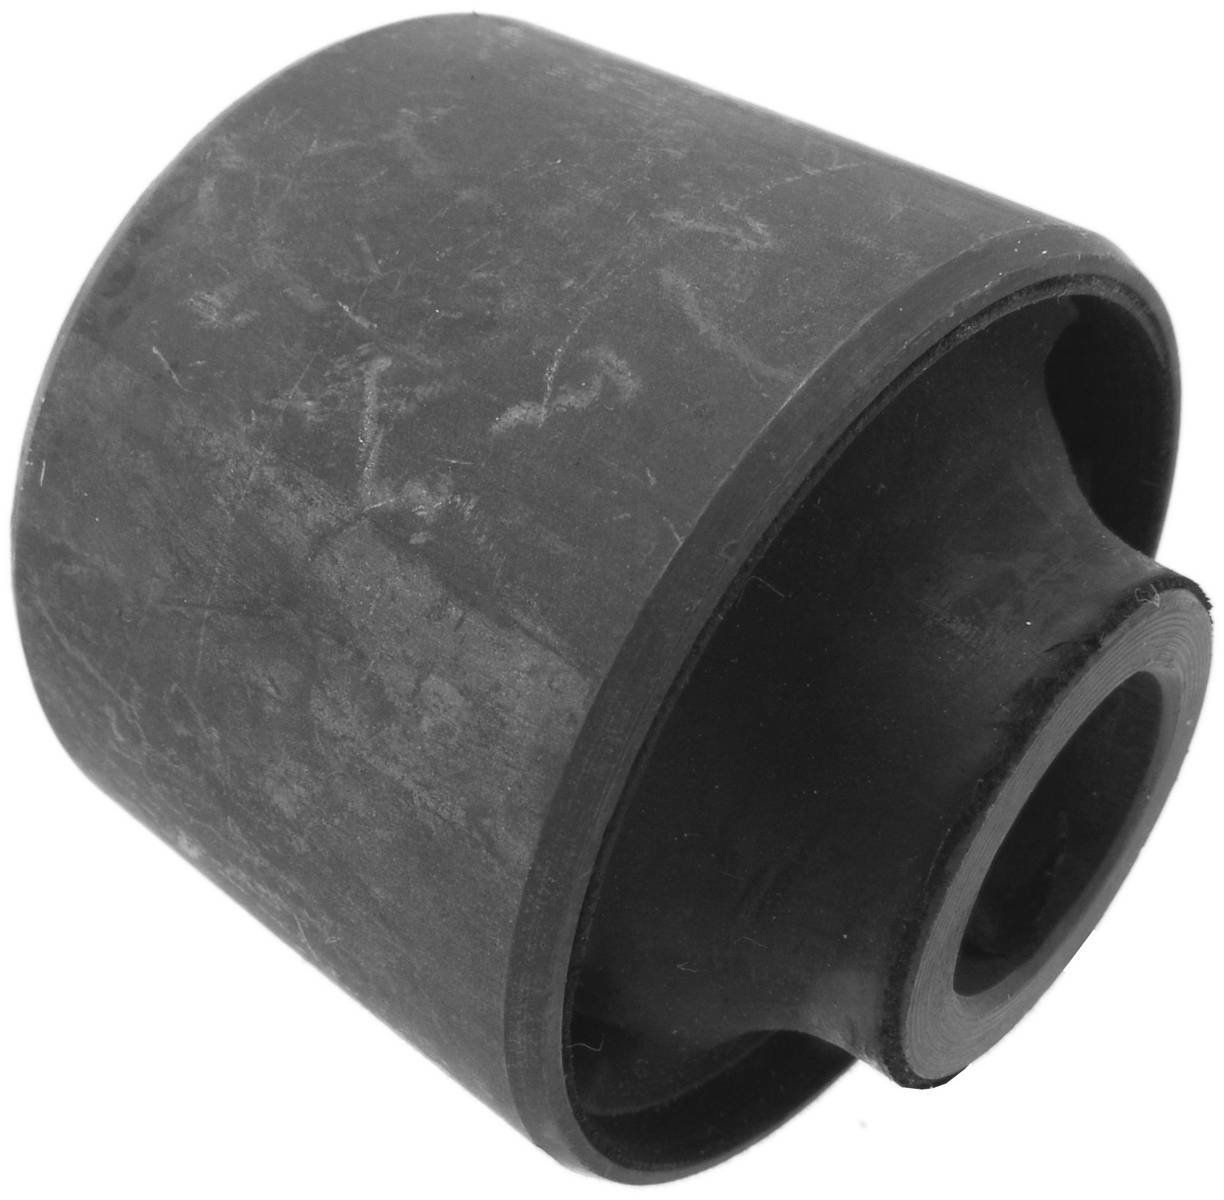 Oem: 48061-60010-Rear Arm Bushing Front Arm -Fits for TOYOTA LAND CRUISER